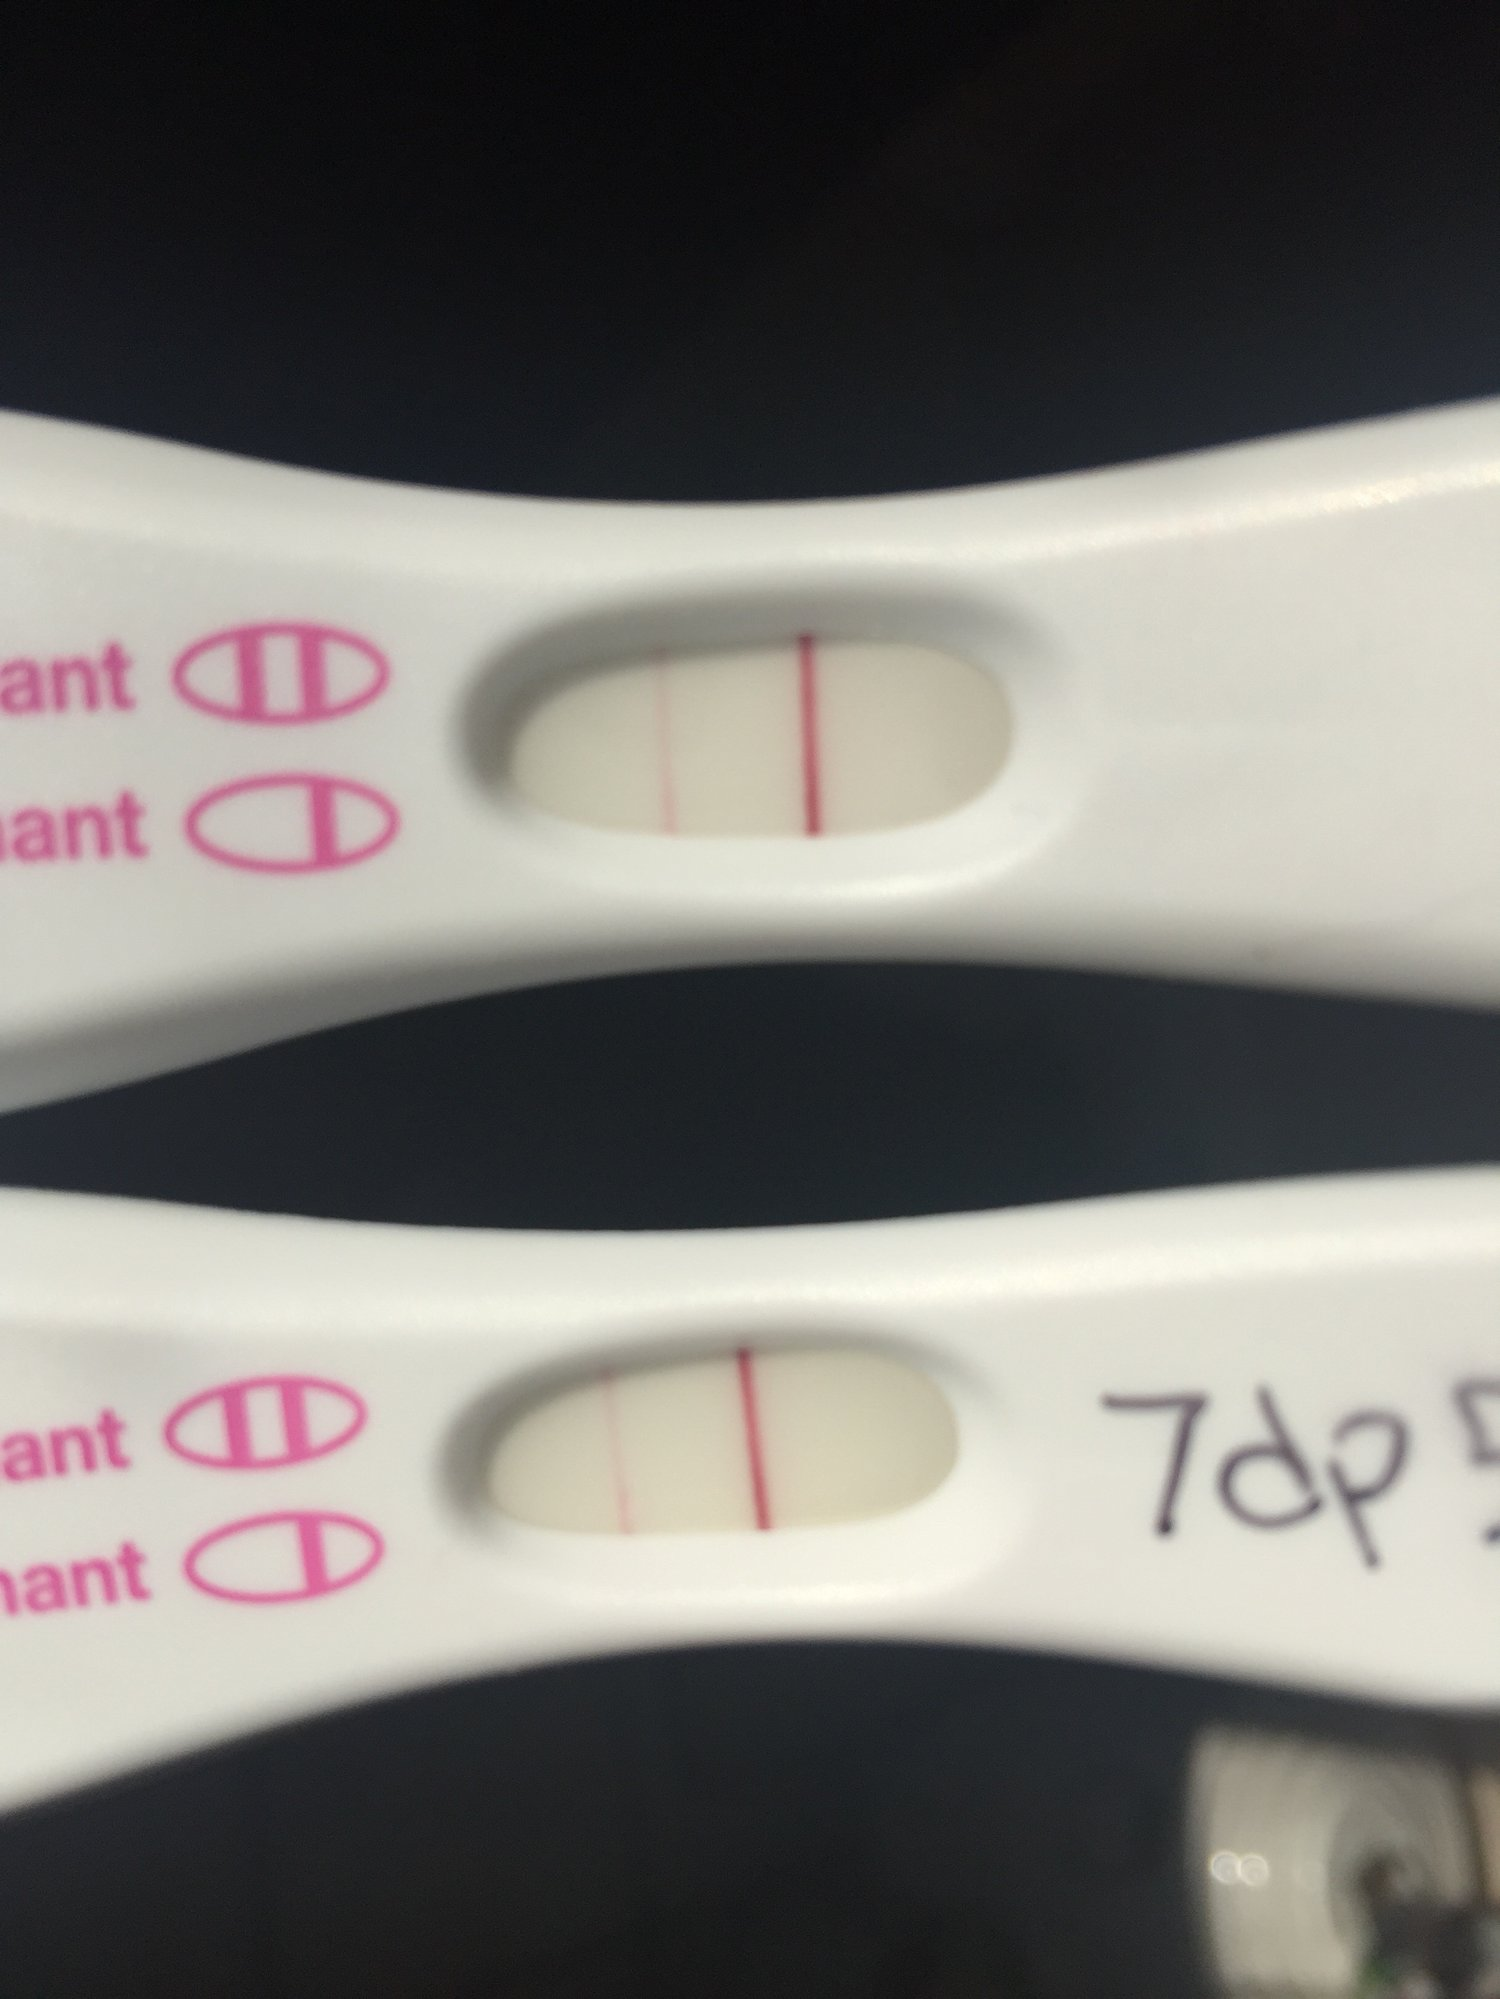 13 Dpo Brown Spotting Bfn